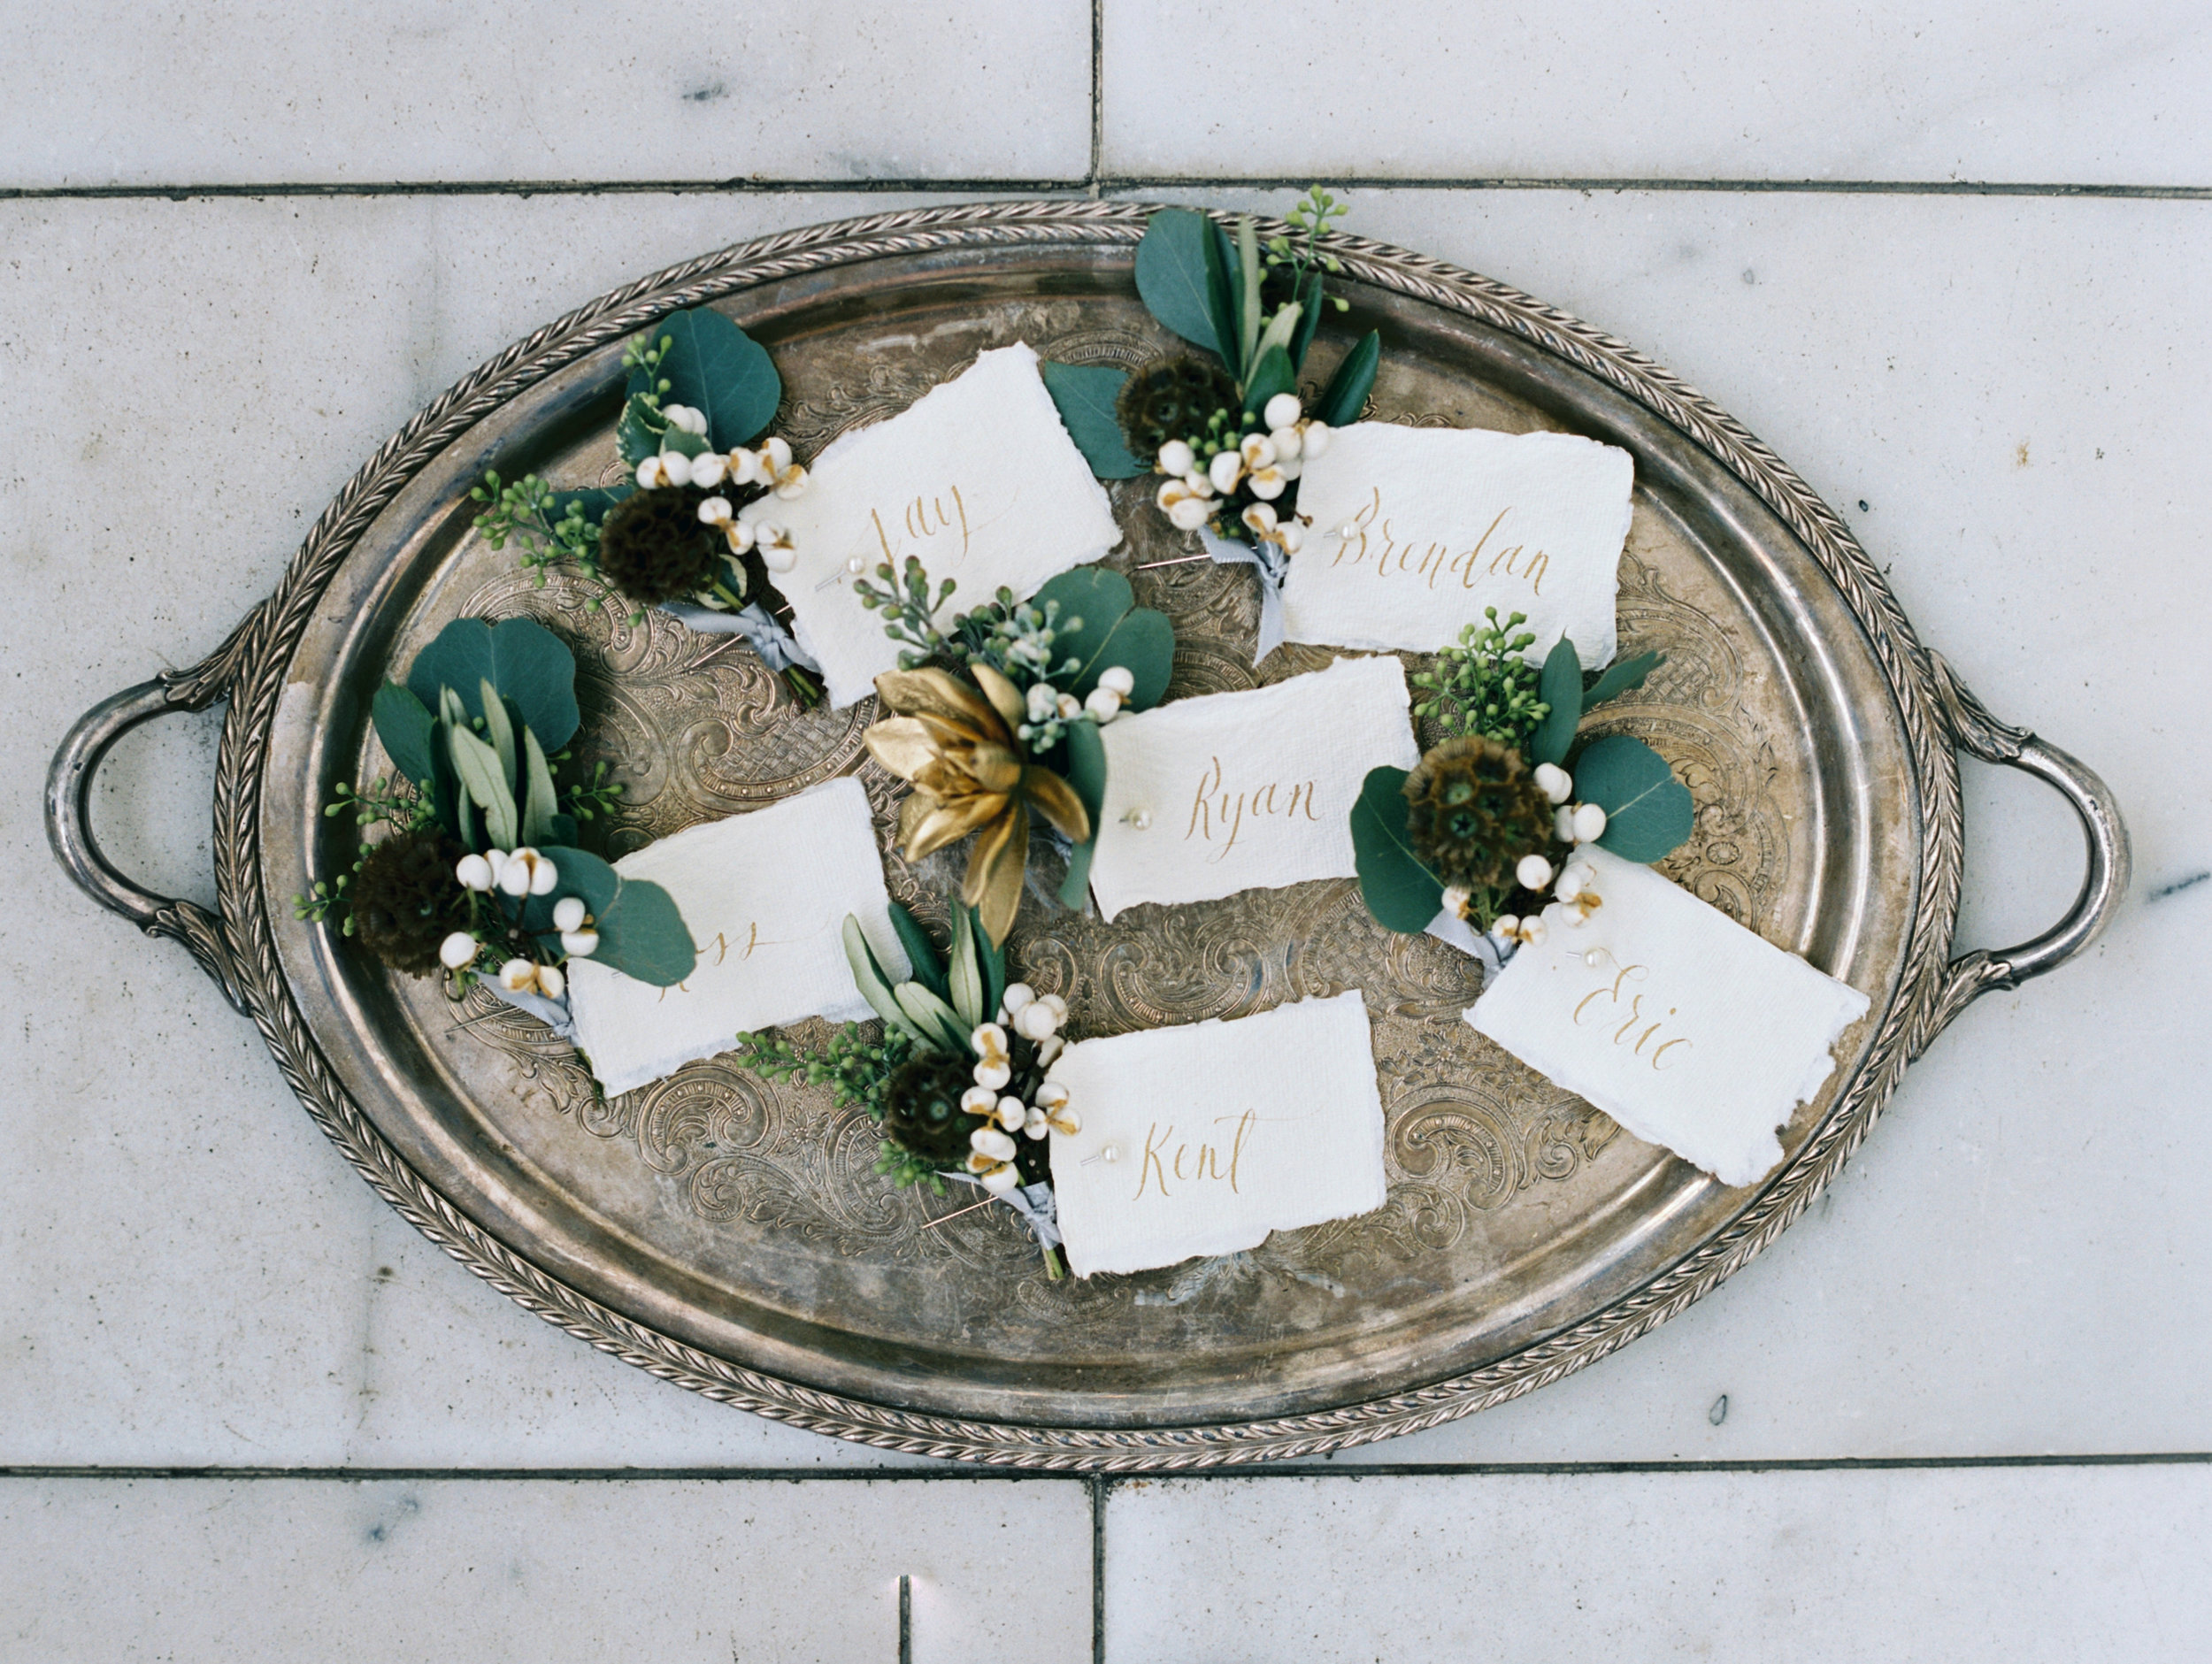 metallic and greenery boutonnieres.JPG